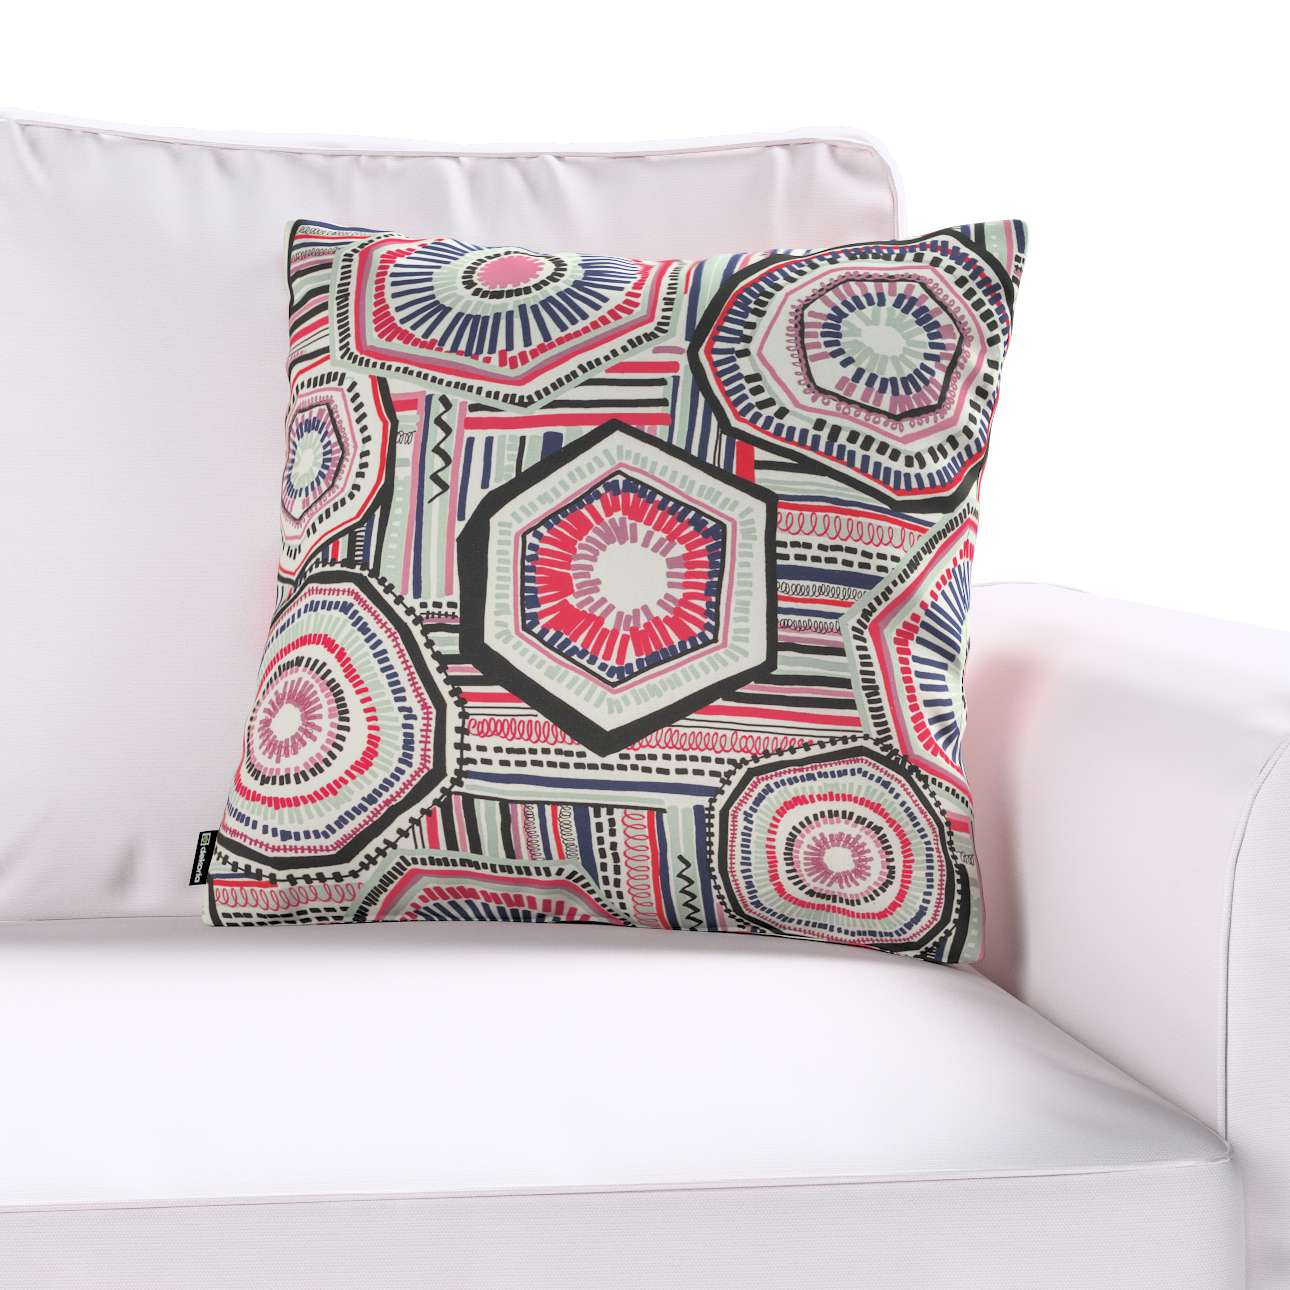 Kinga cushion cover in collection New Art, fabric: 141-54